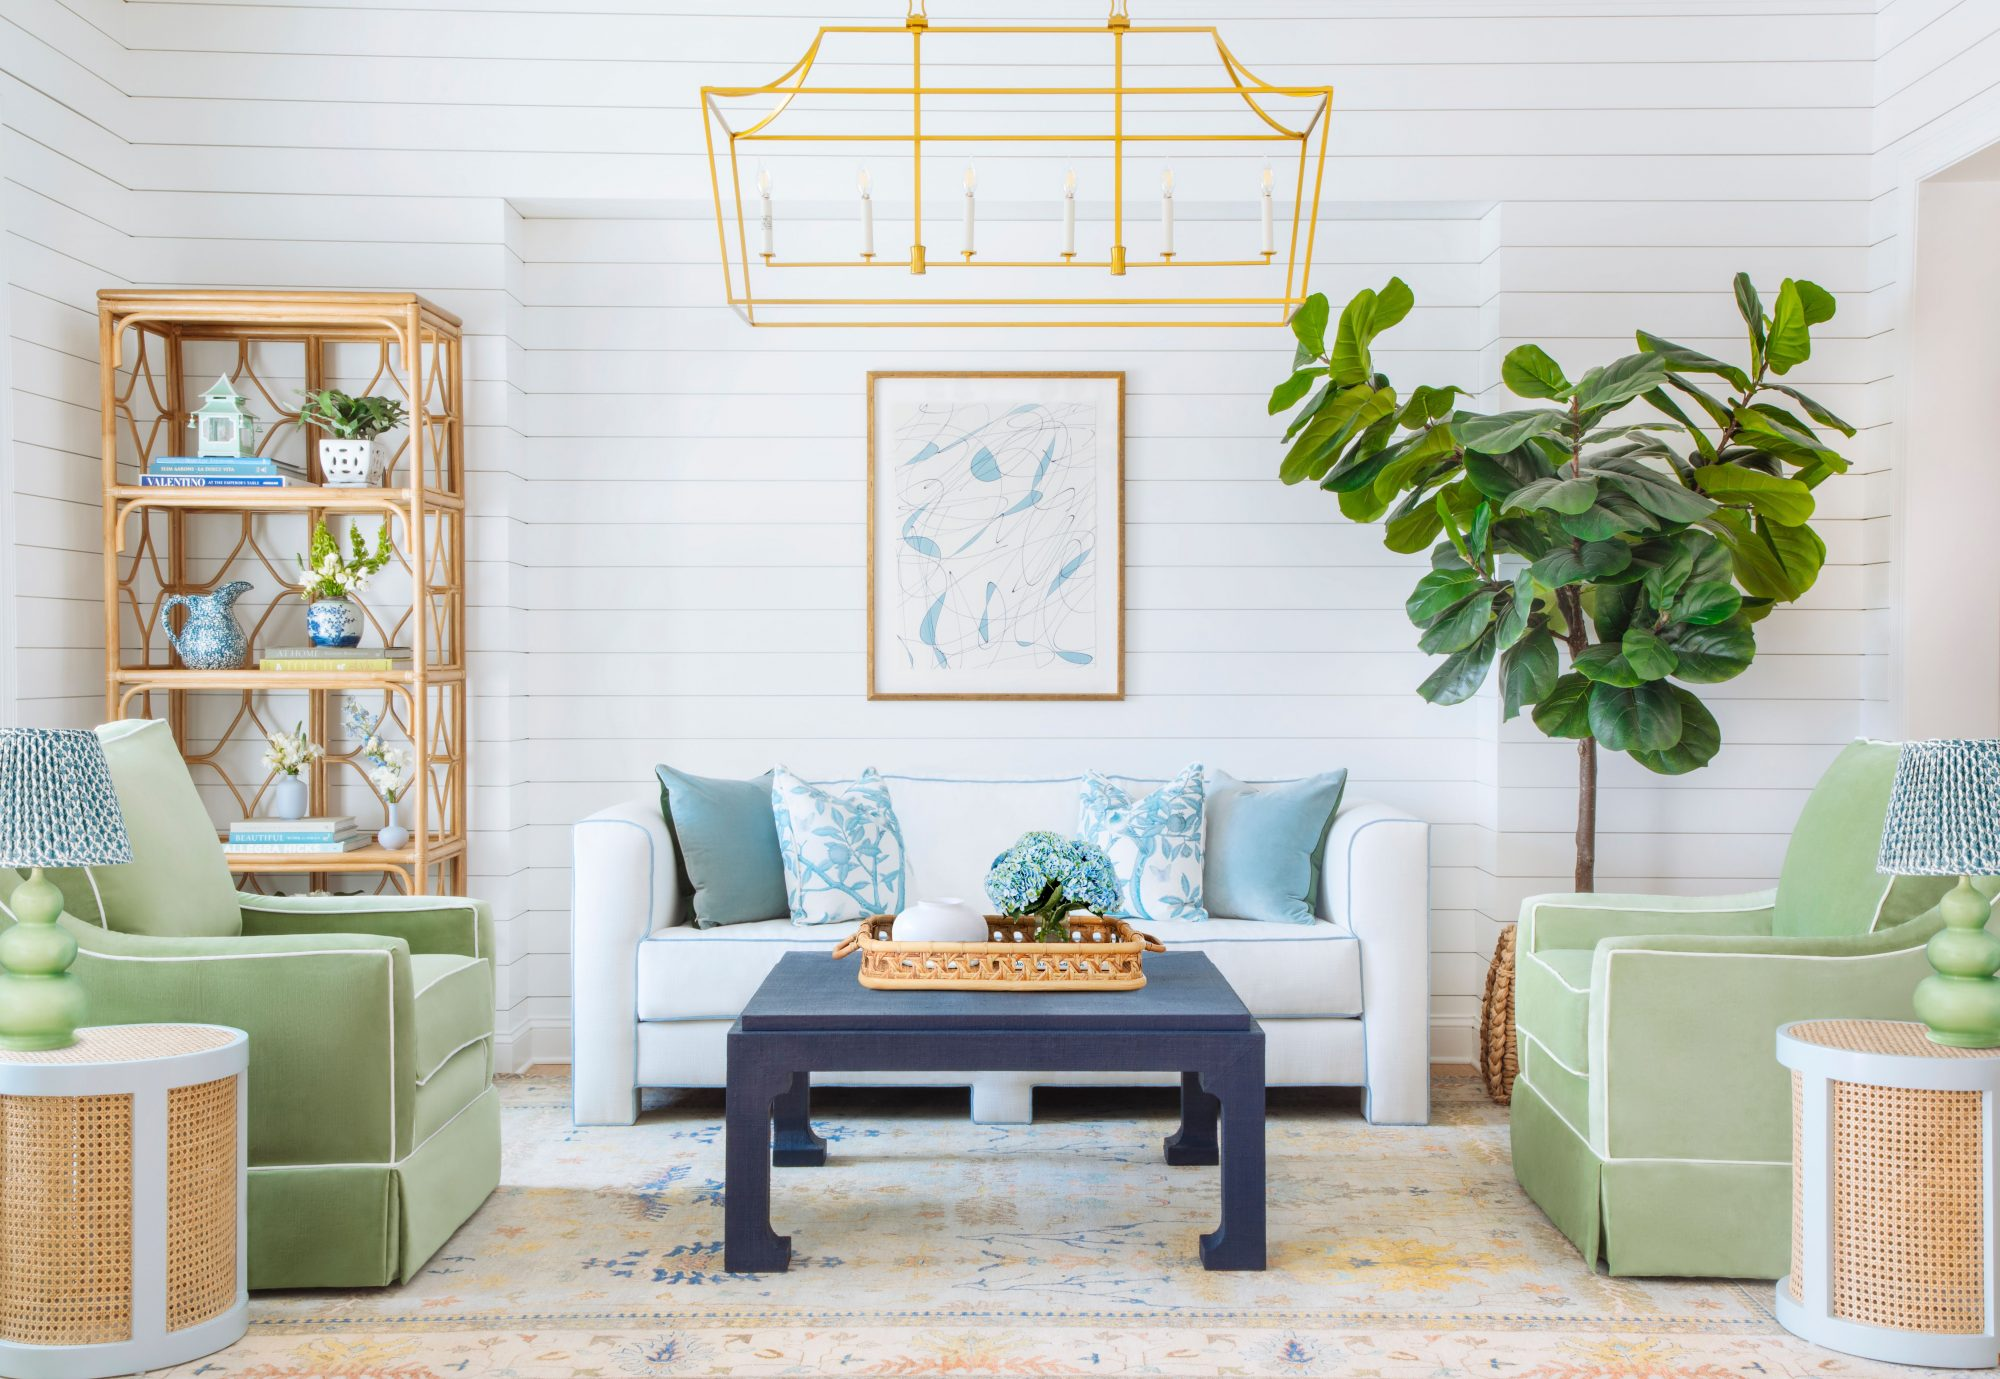 10 Home Decor Trends That Will Be Huge In 2021 Southern Living